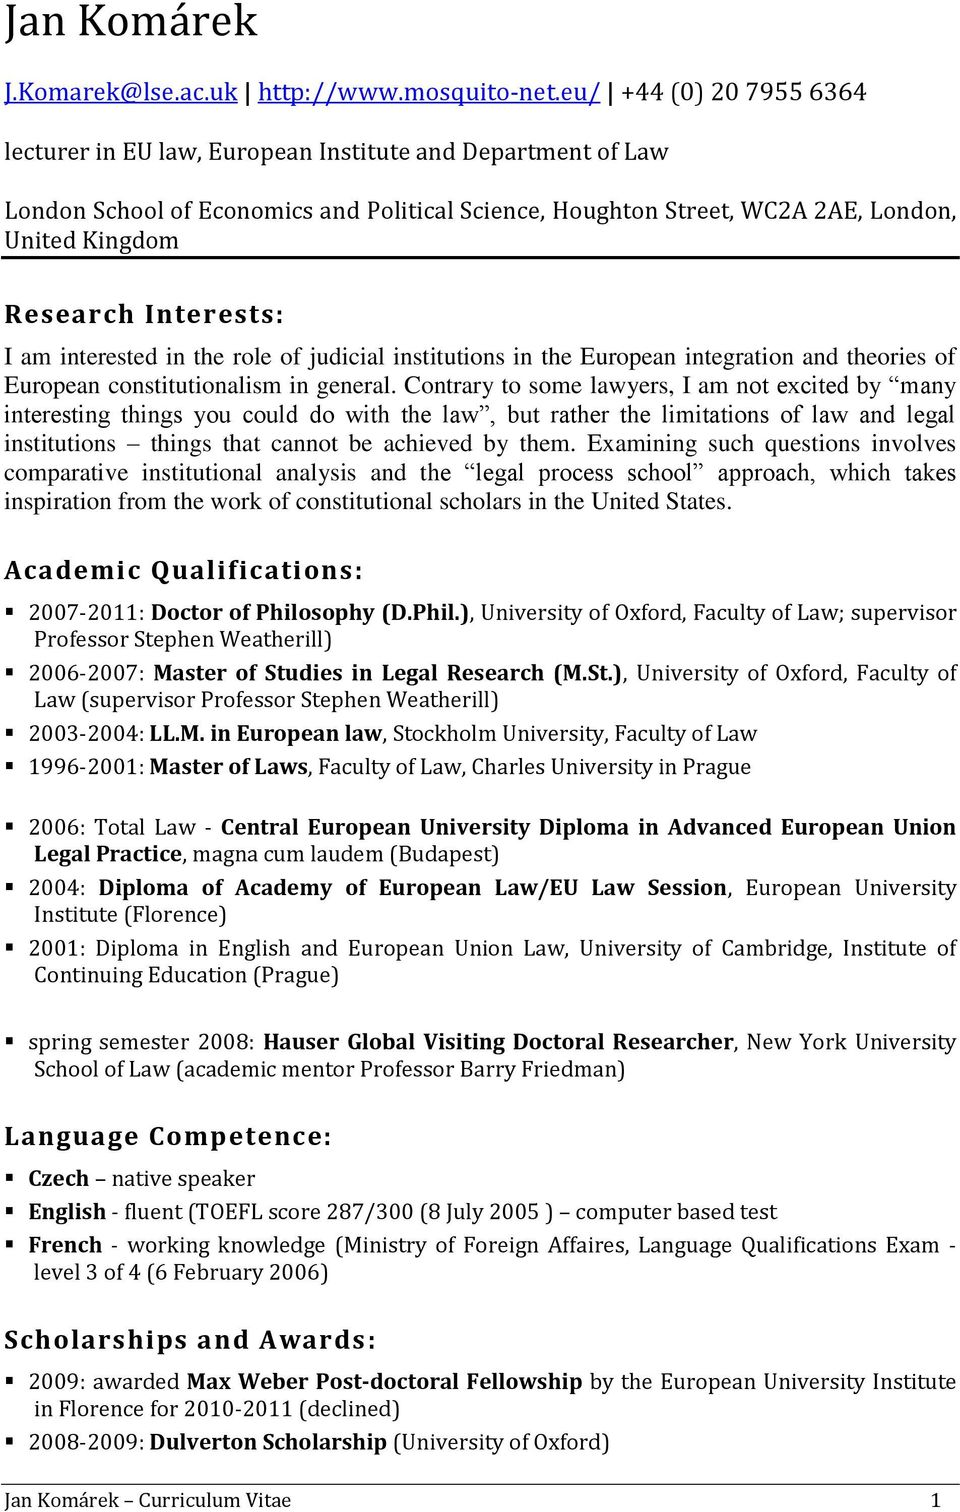 Interests: I am interested in the role of judicial institutions in the European integration and theories of European constitutionalism in general.